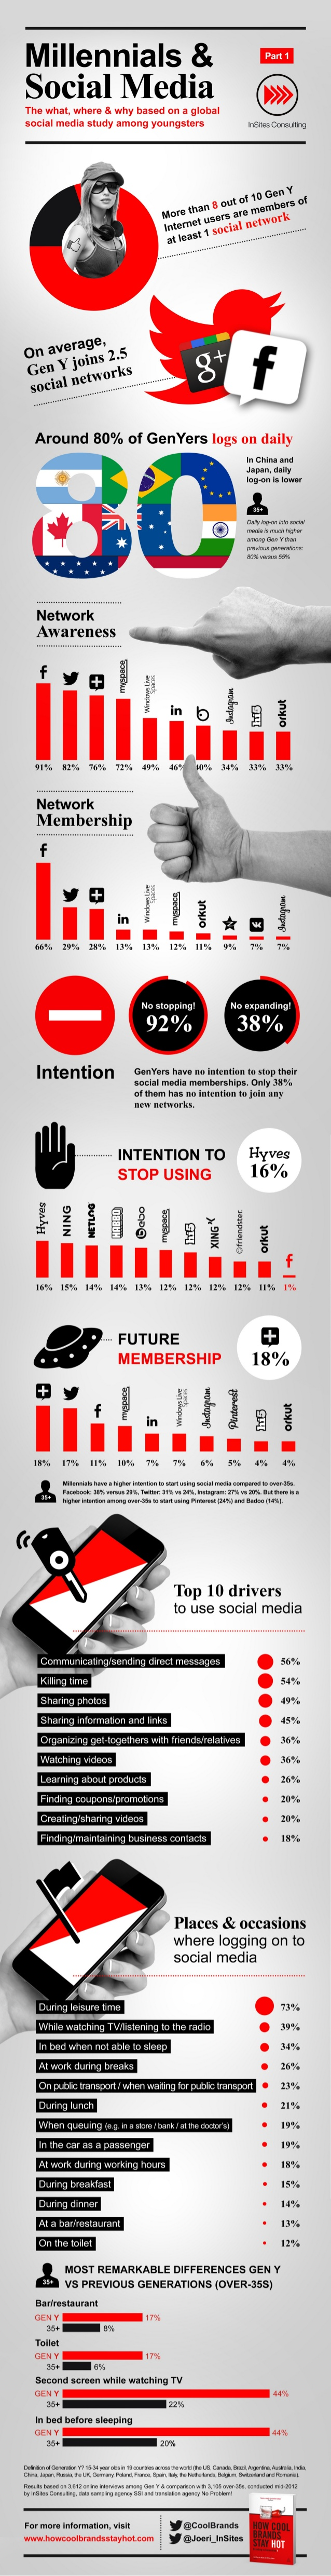 Infographic: Millennials & Social Media - Part I by Joeri Van den Bergh via slideshare